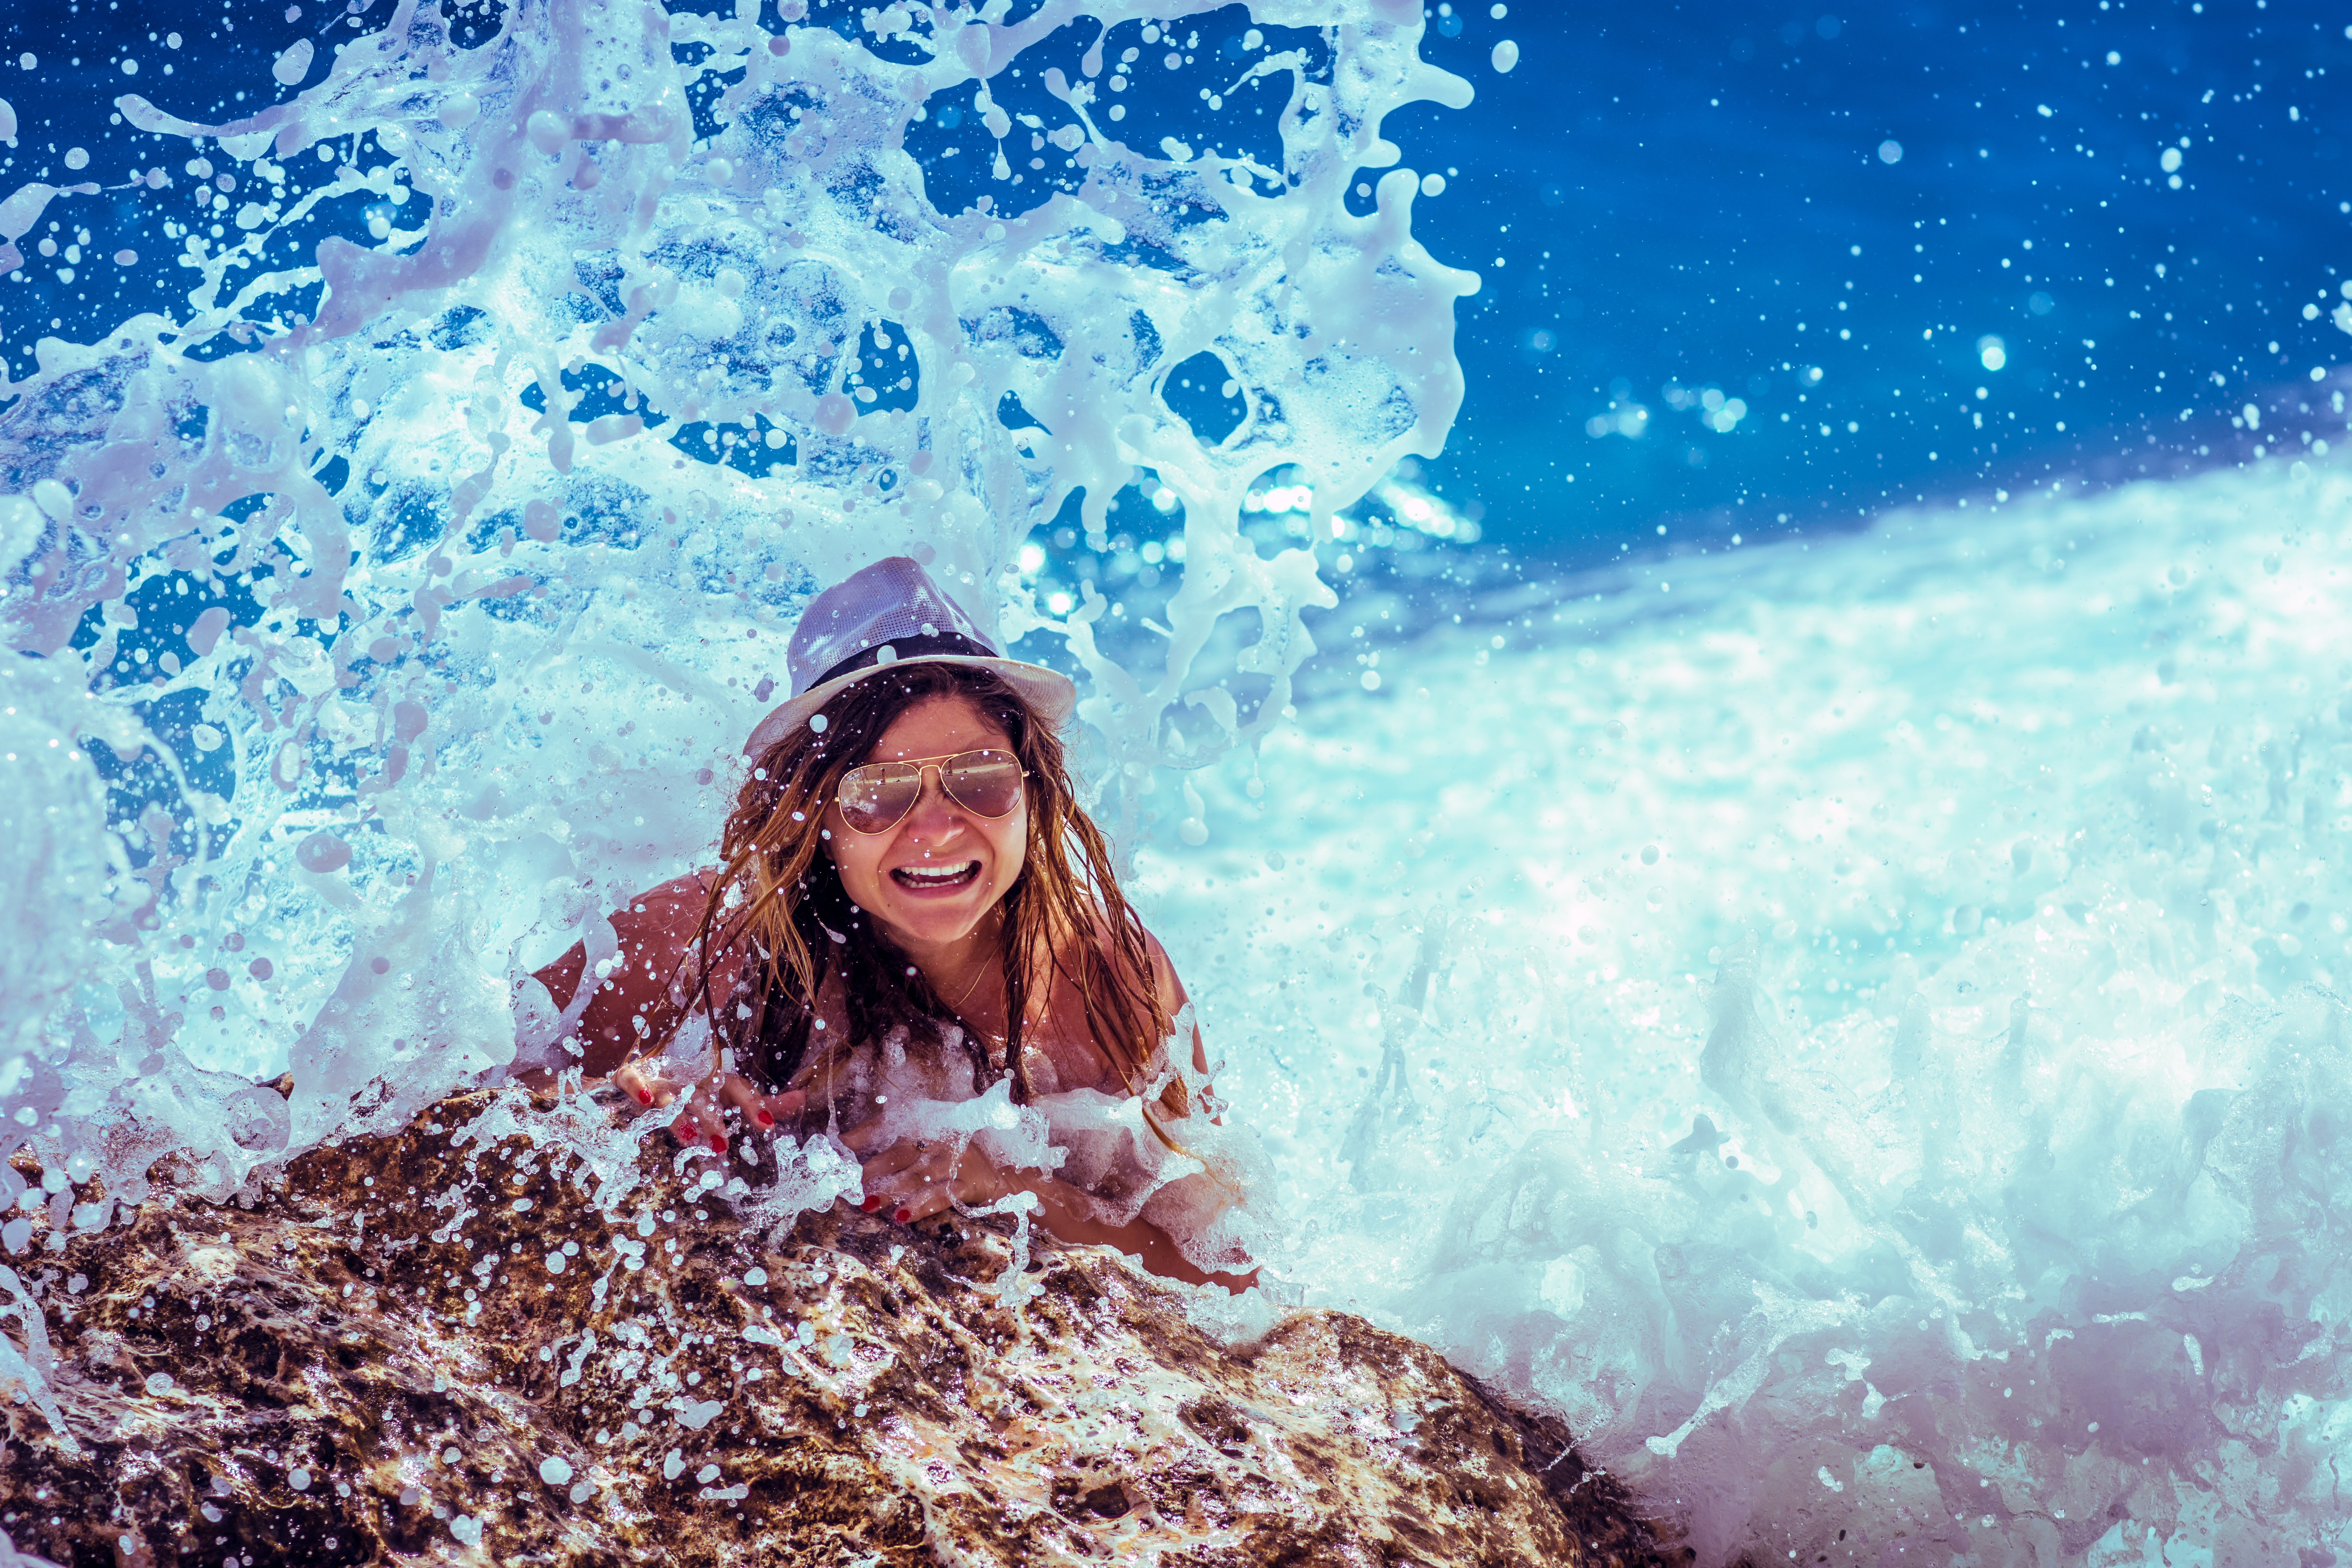 A girl wearing a hat hanging on rock being hit by a wave from the ocean at Lalaria beach